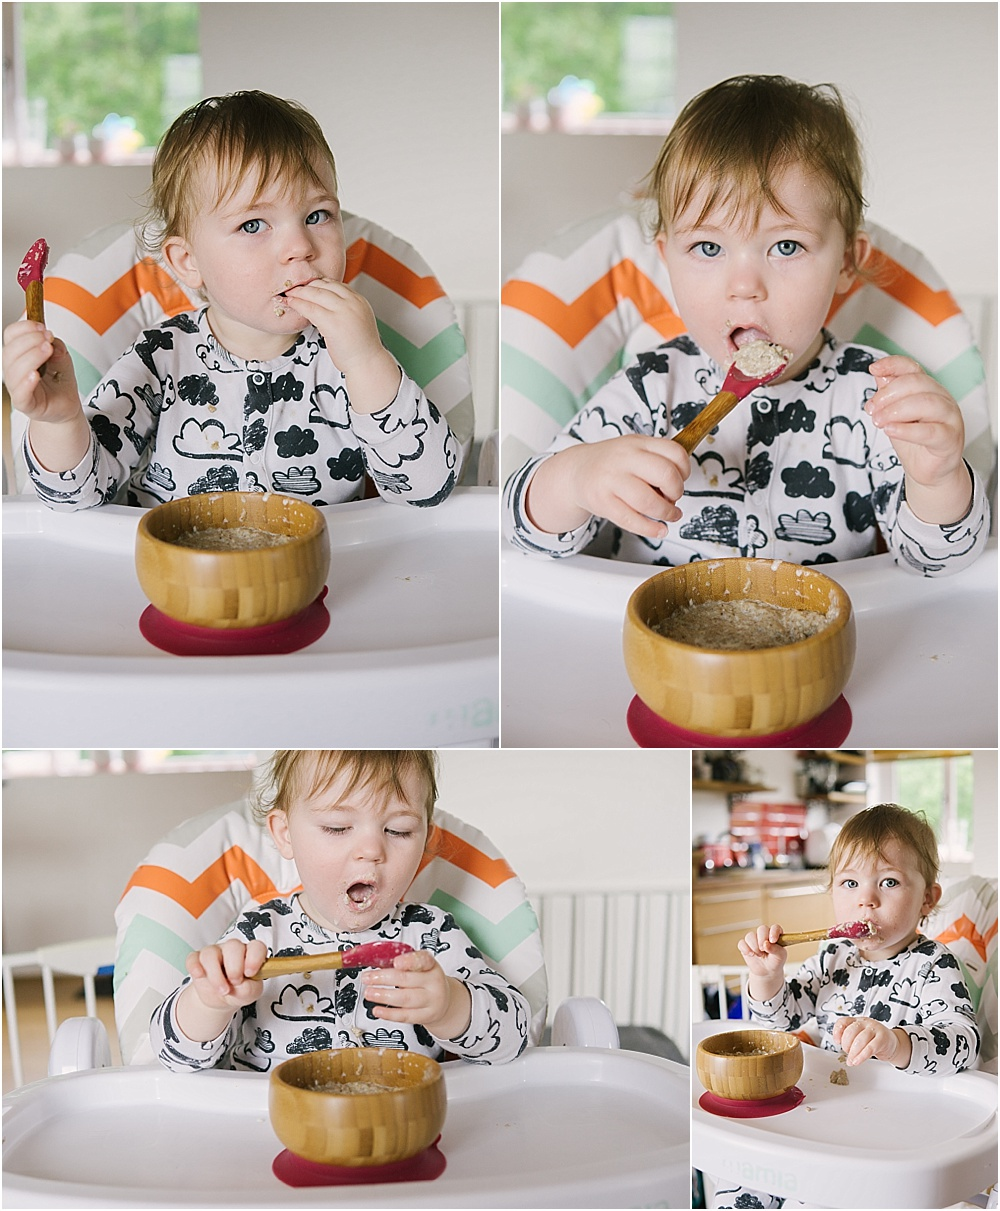 Baby Led Weaning with Onco Baby Bamboo Bowl and Spoon Set